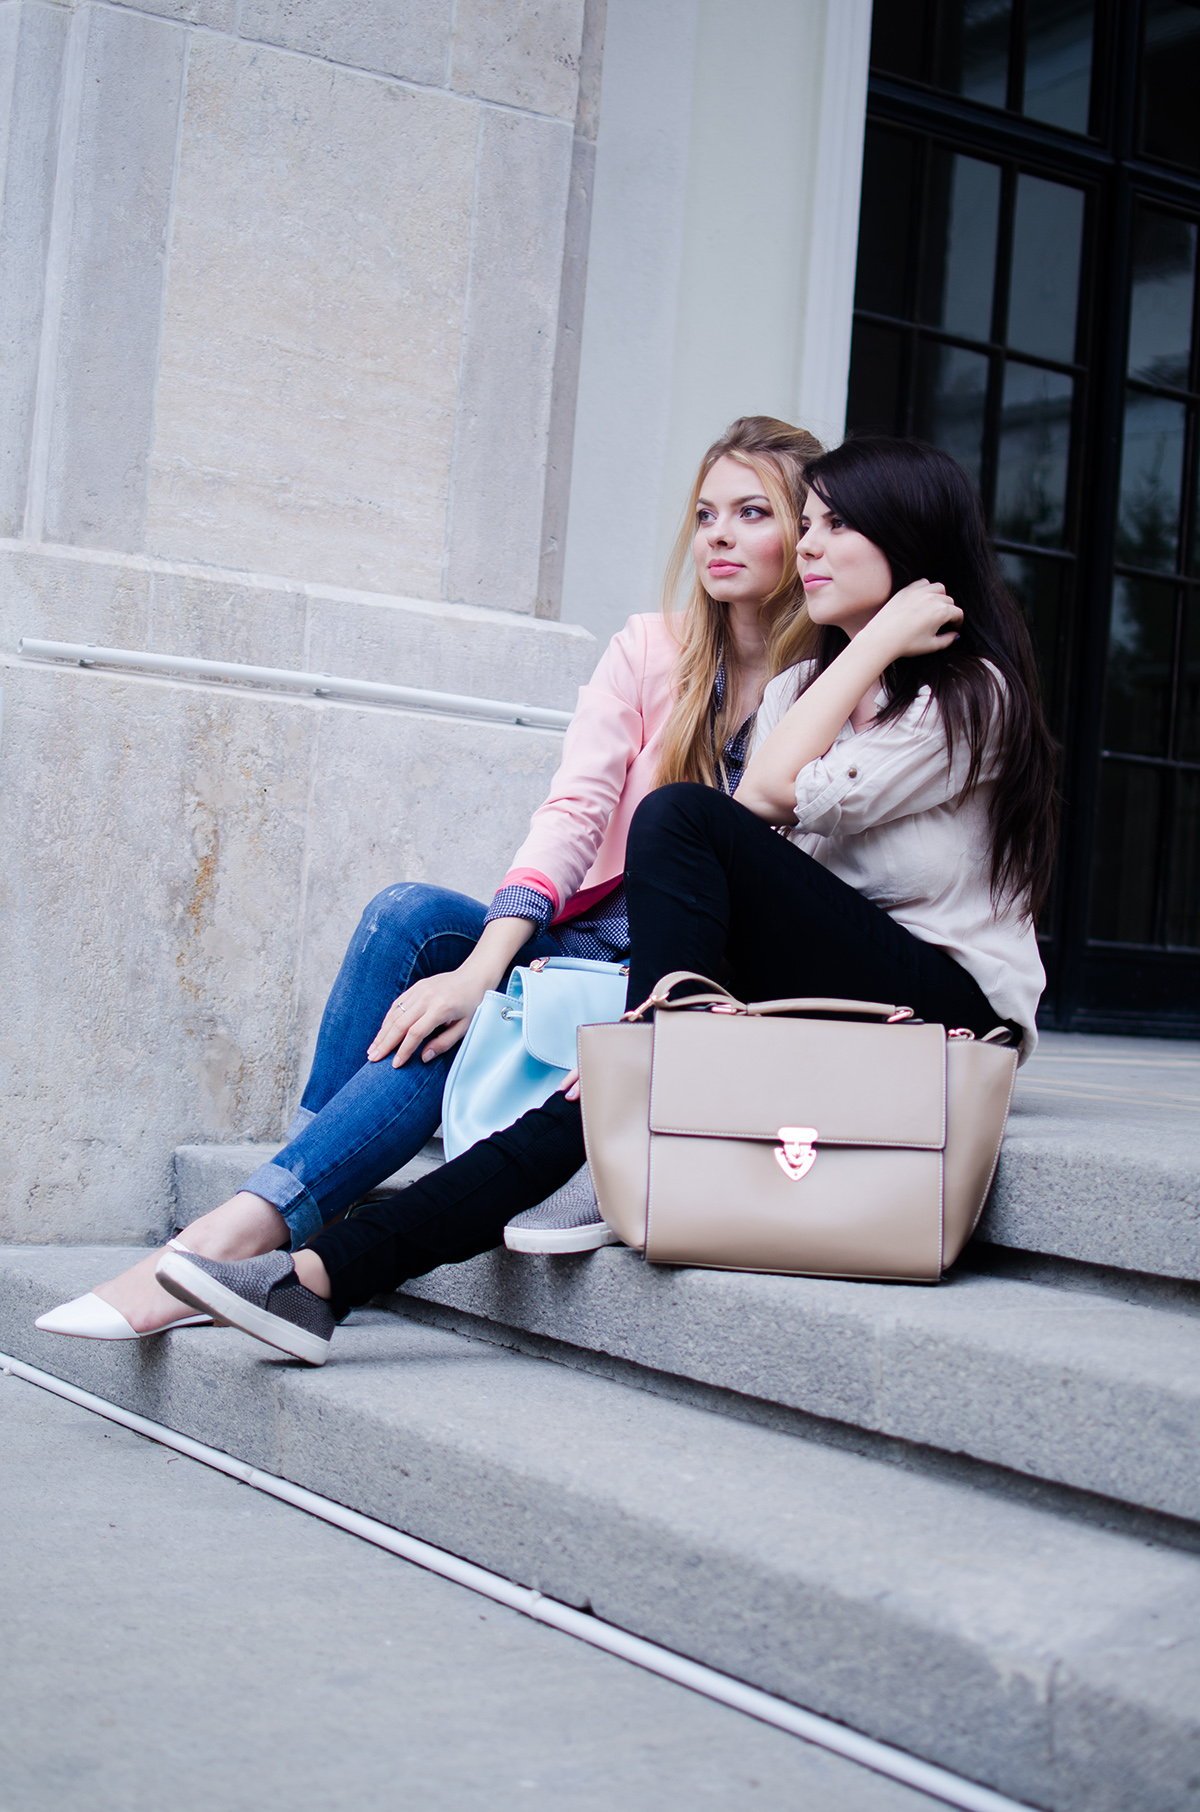 pink-blazer-skinny-jeans-white-pointed-flats-blue-backback-back-to-college (1)